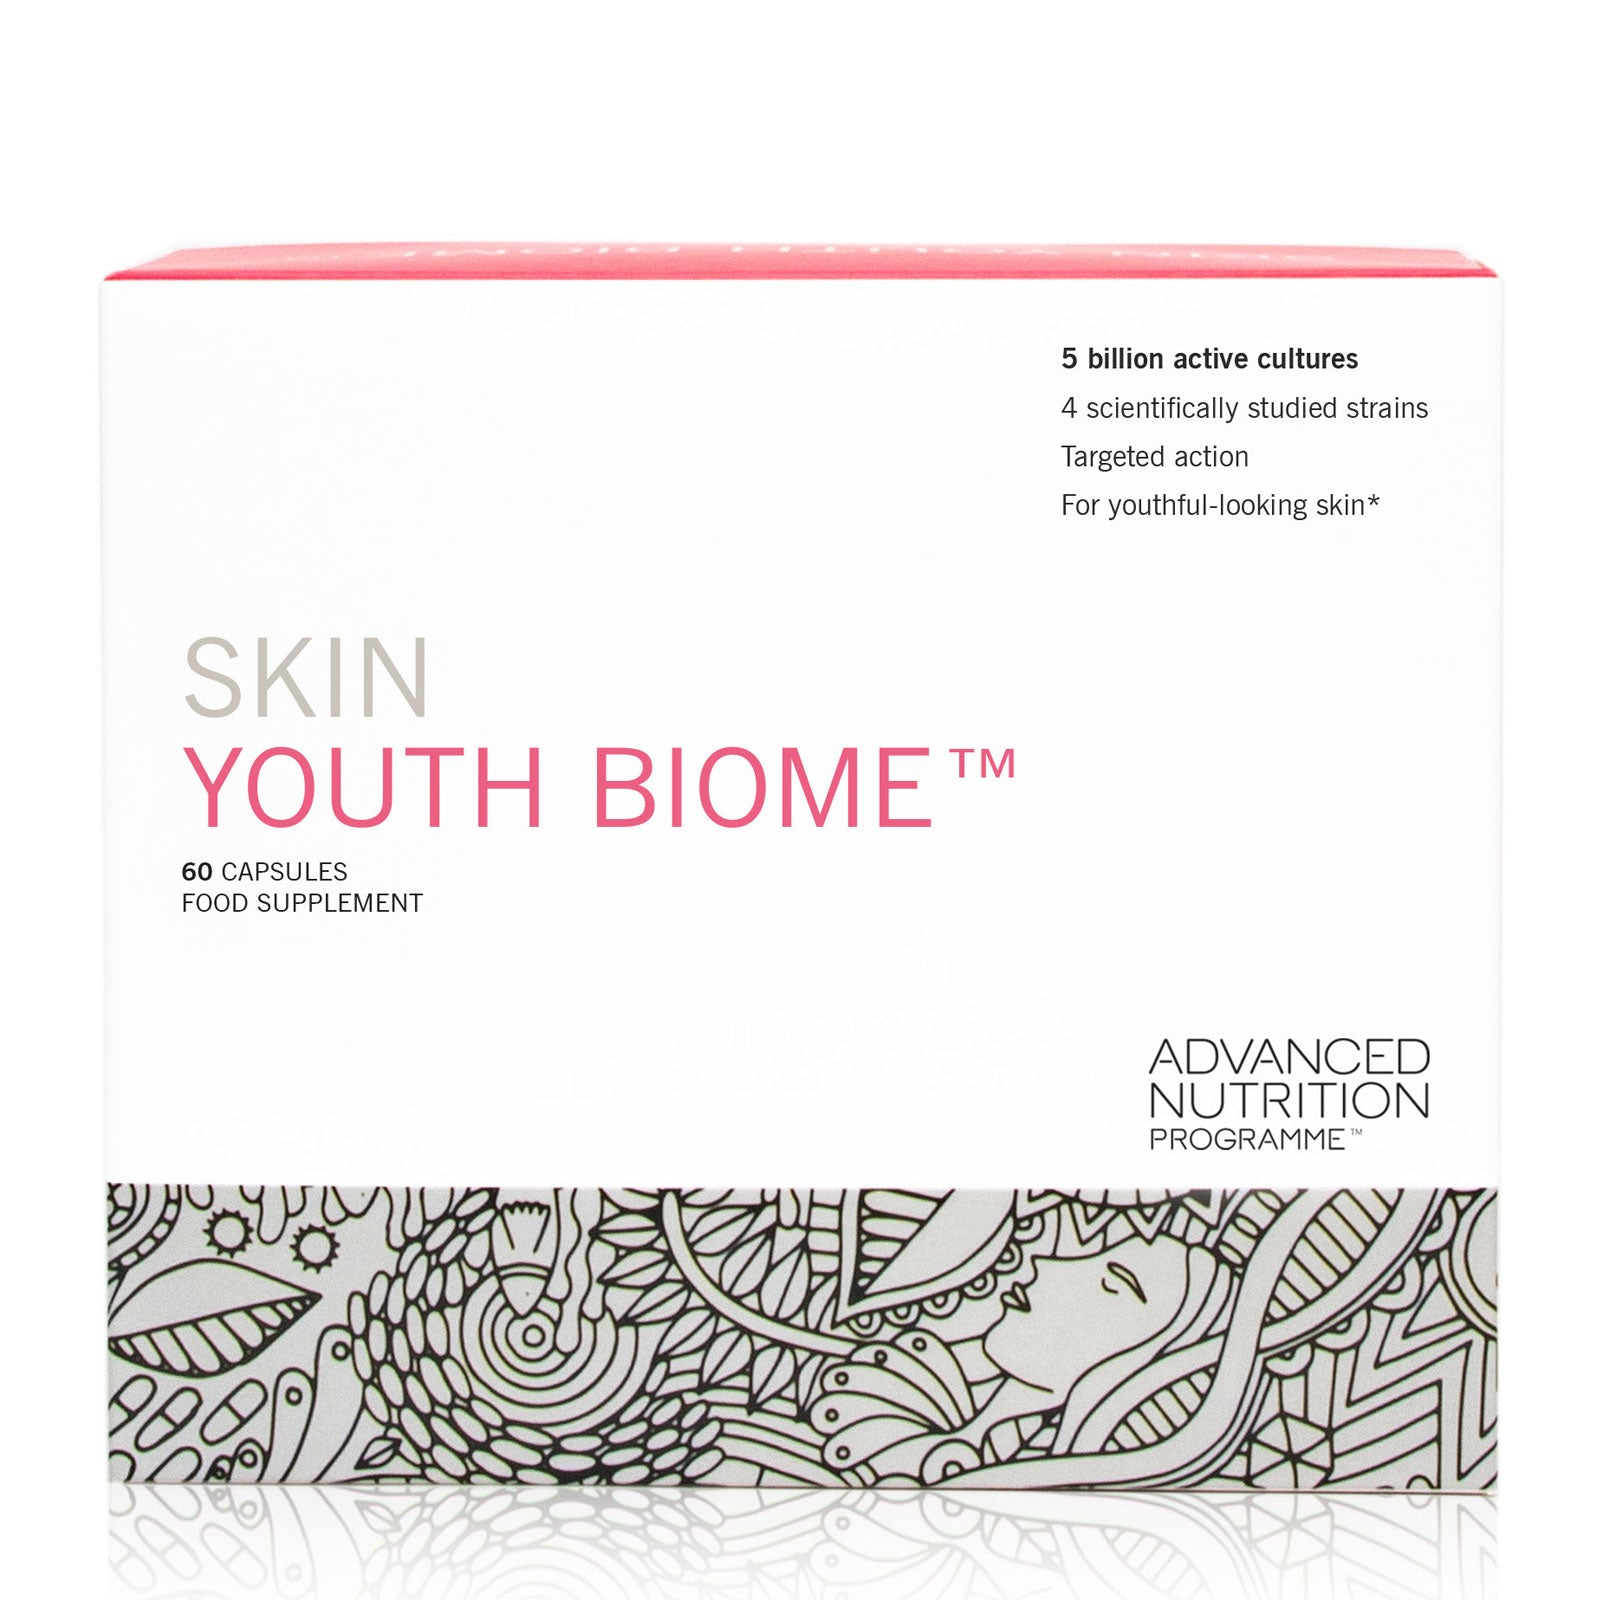 Advanced Nutrition Programme™ Skin Youth Biome x 60 Capsules